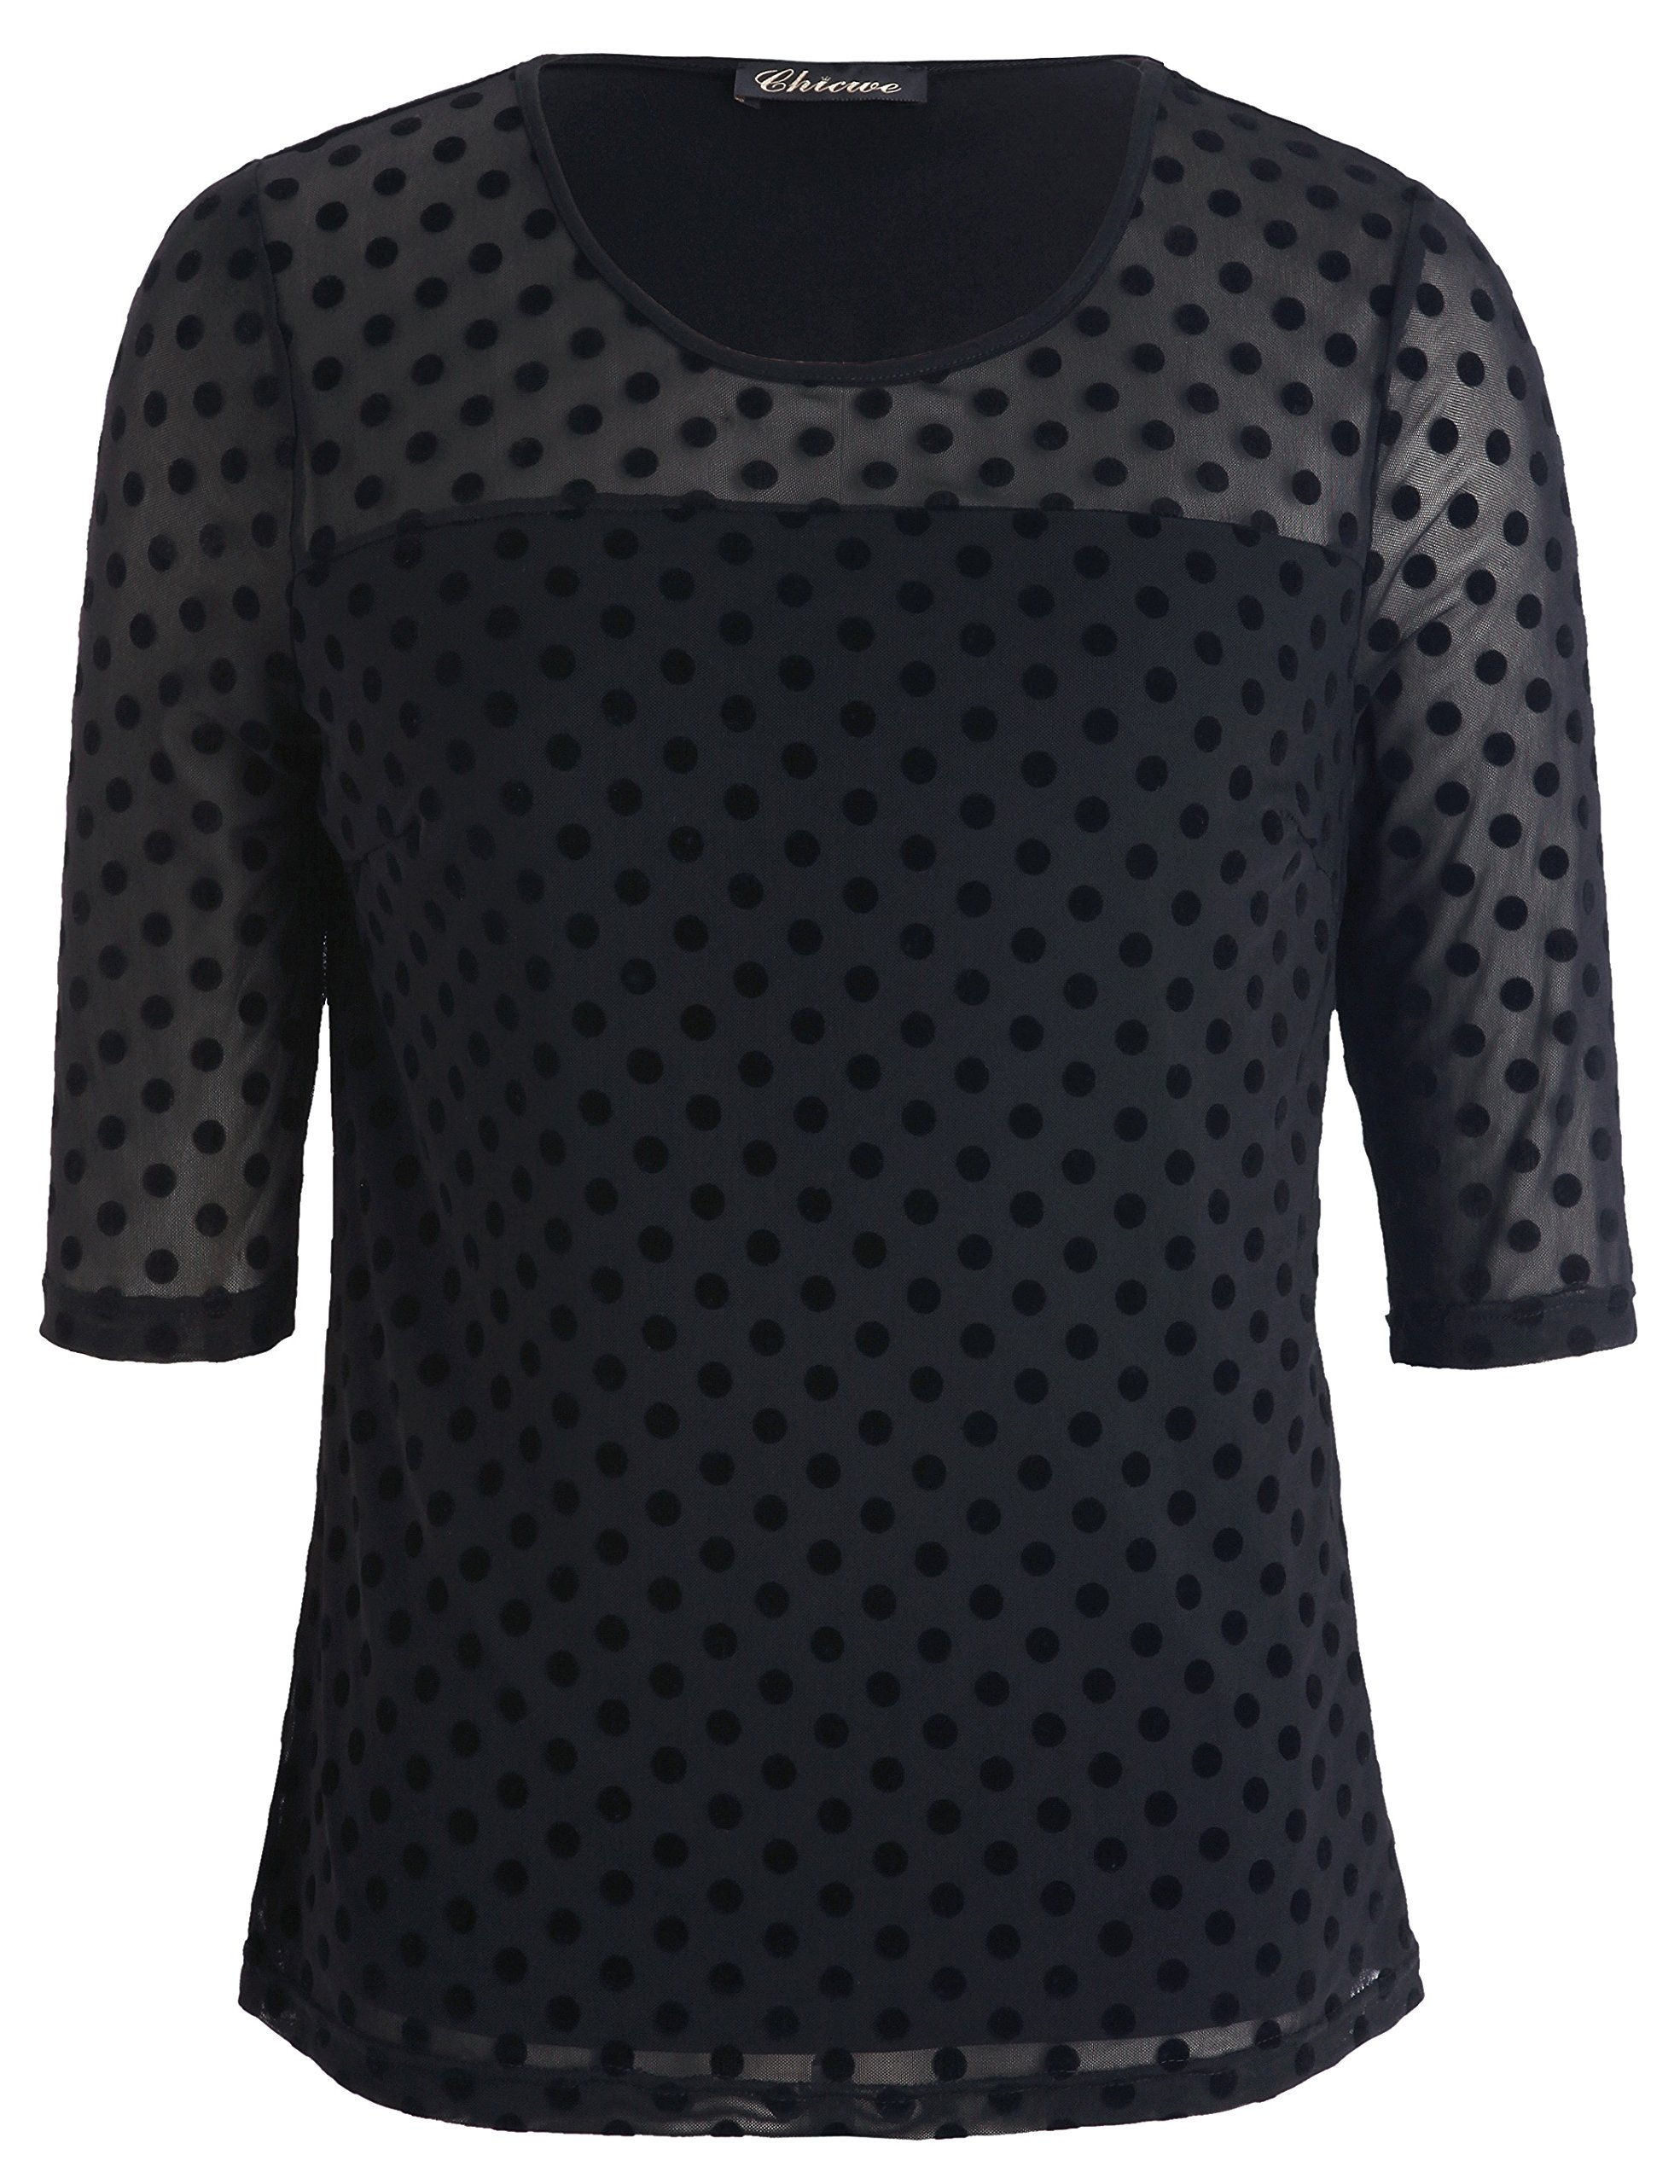 Chicwe Women's Plus Size Stretch Dot Mesh Jumper Blouse - Casual and Work Top 3X